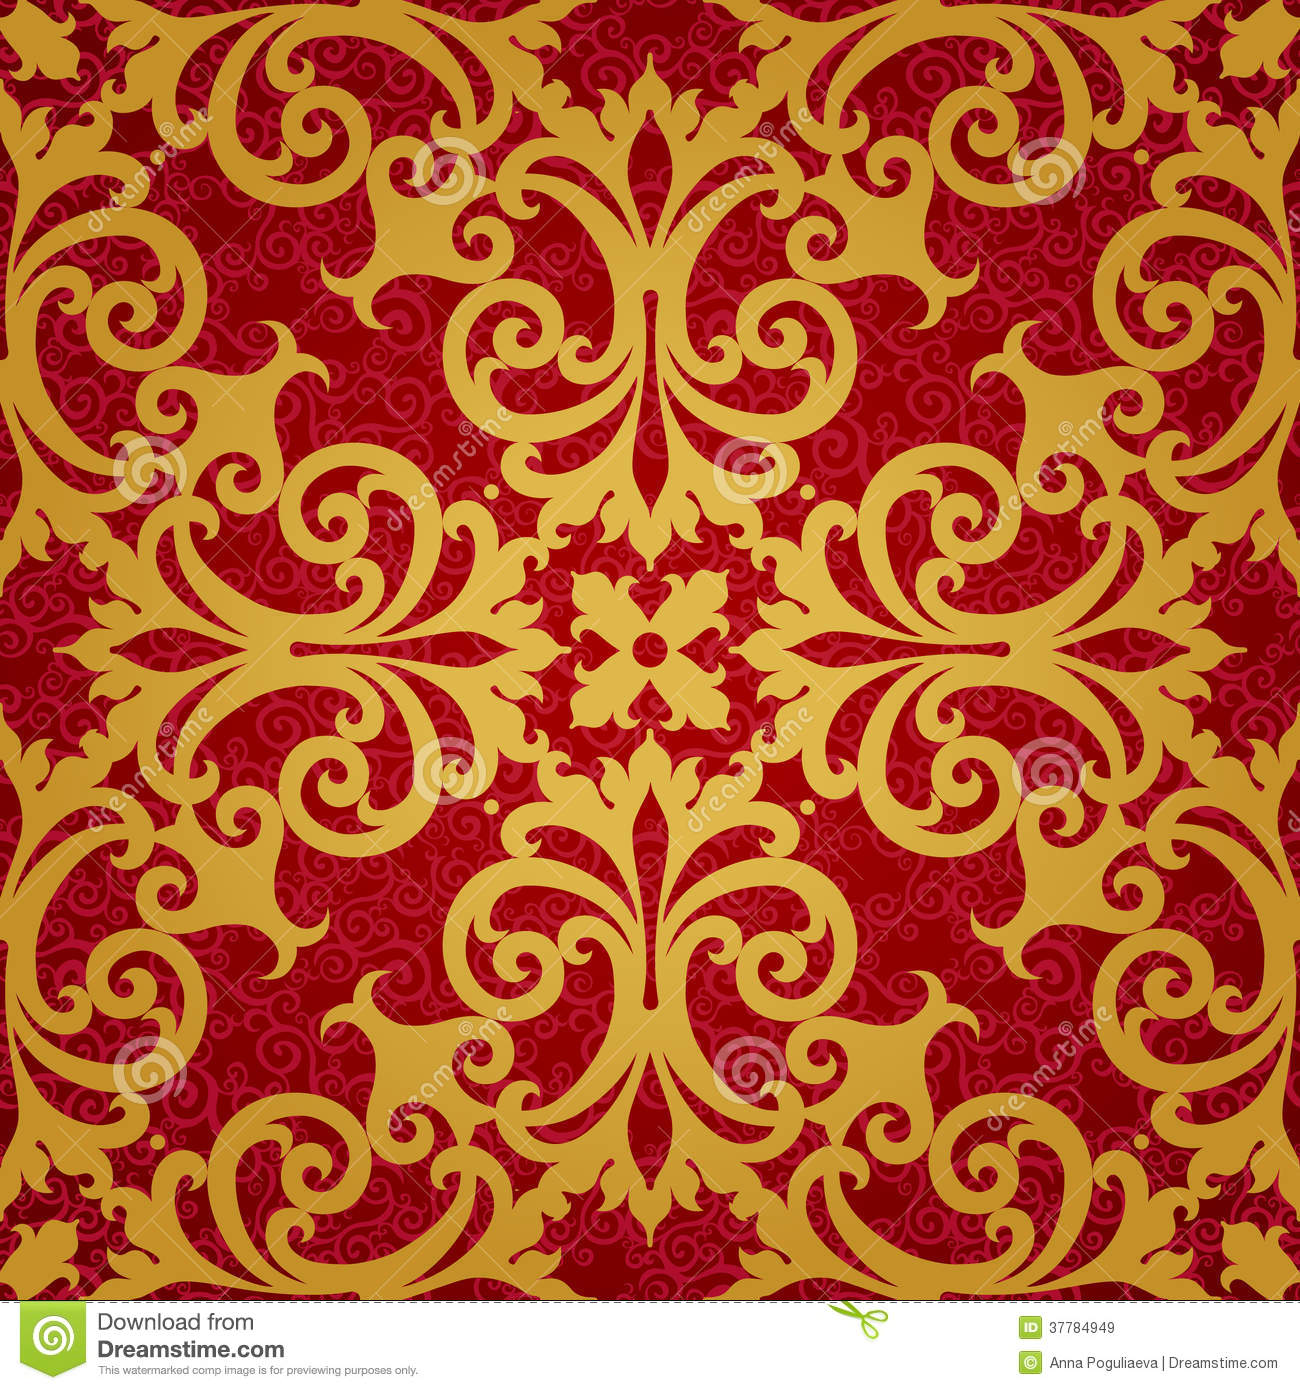 Vector Seamless Pattern With Swirls And Floral Motifs In Retro Style. Royalty Free Stock Images ...